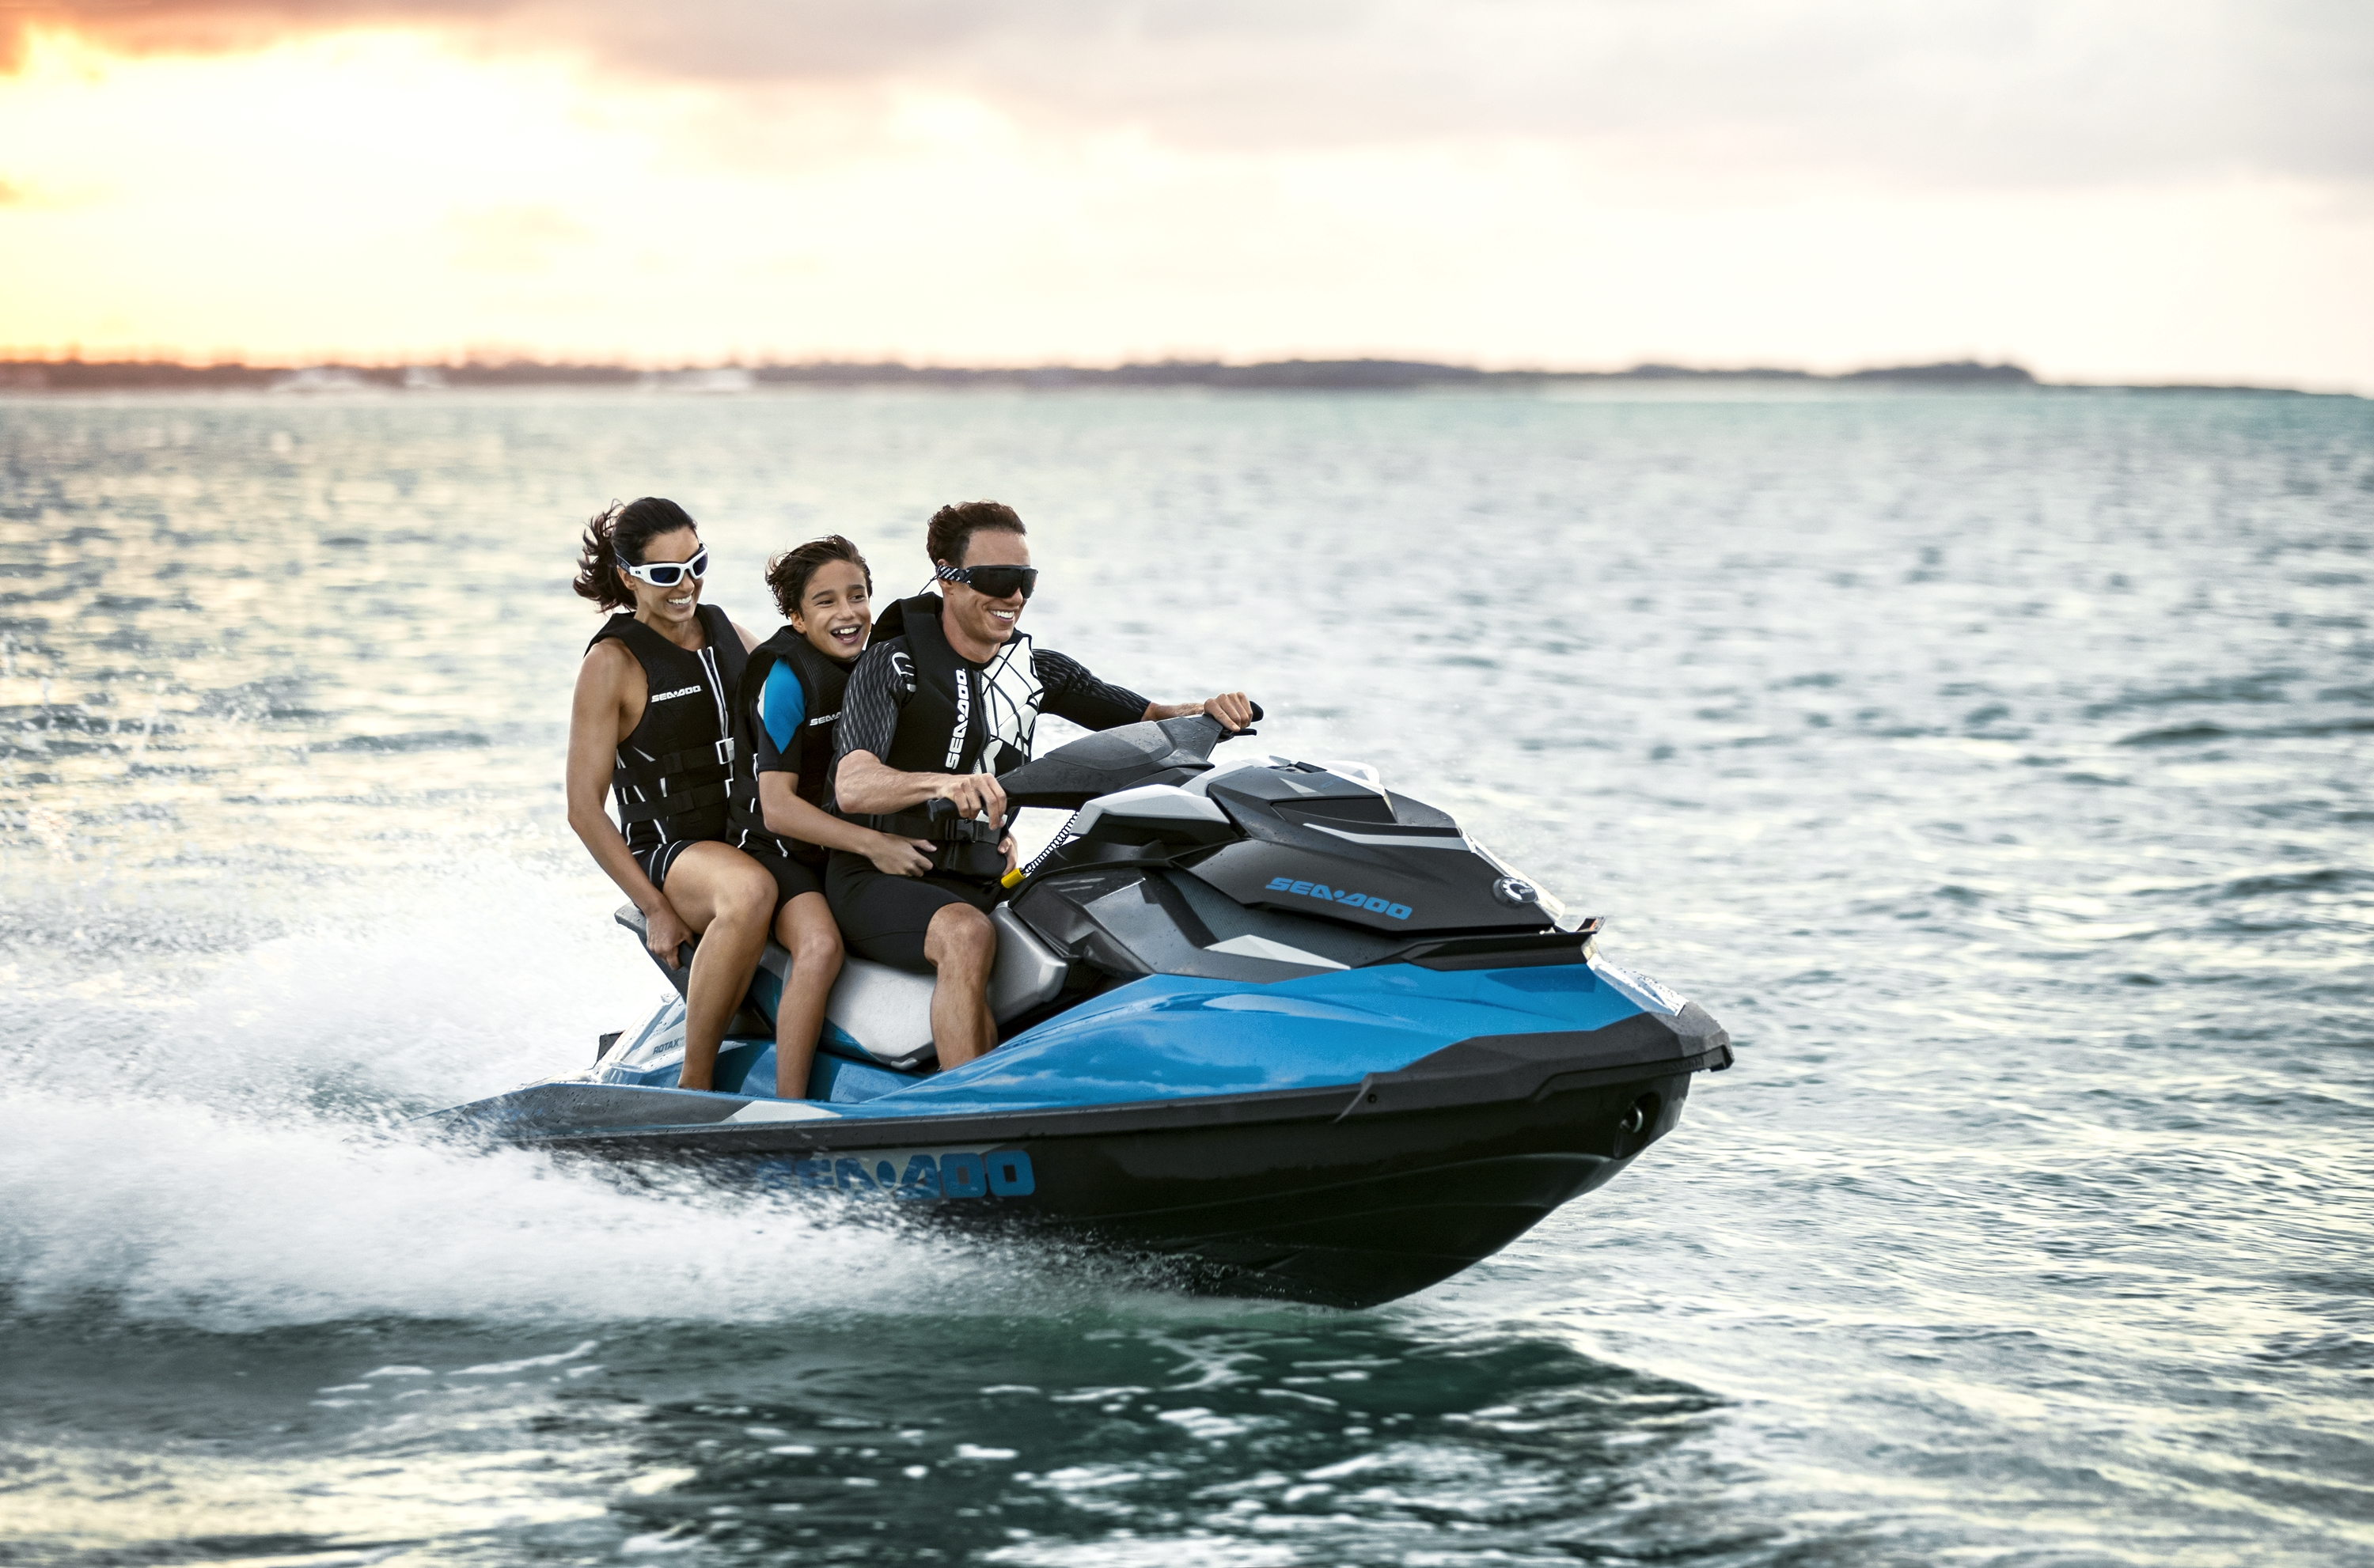 2018 SEA-DOO GTS and GTI WATERCRAFT | Sea-Doo Onboard